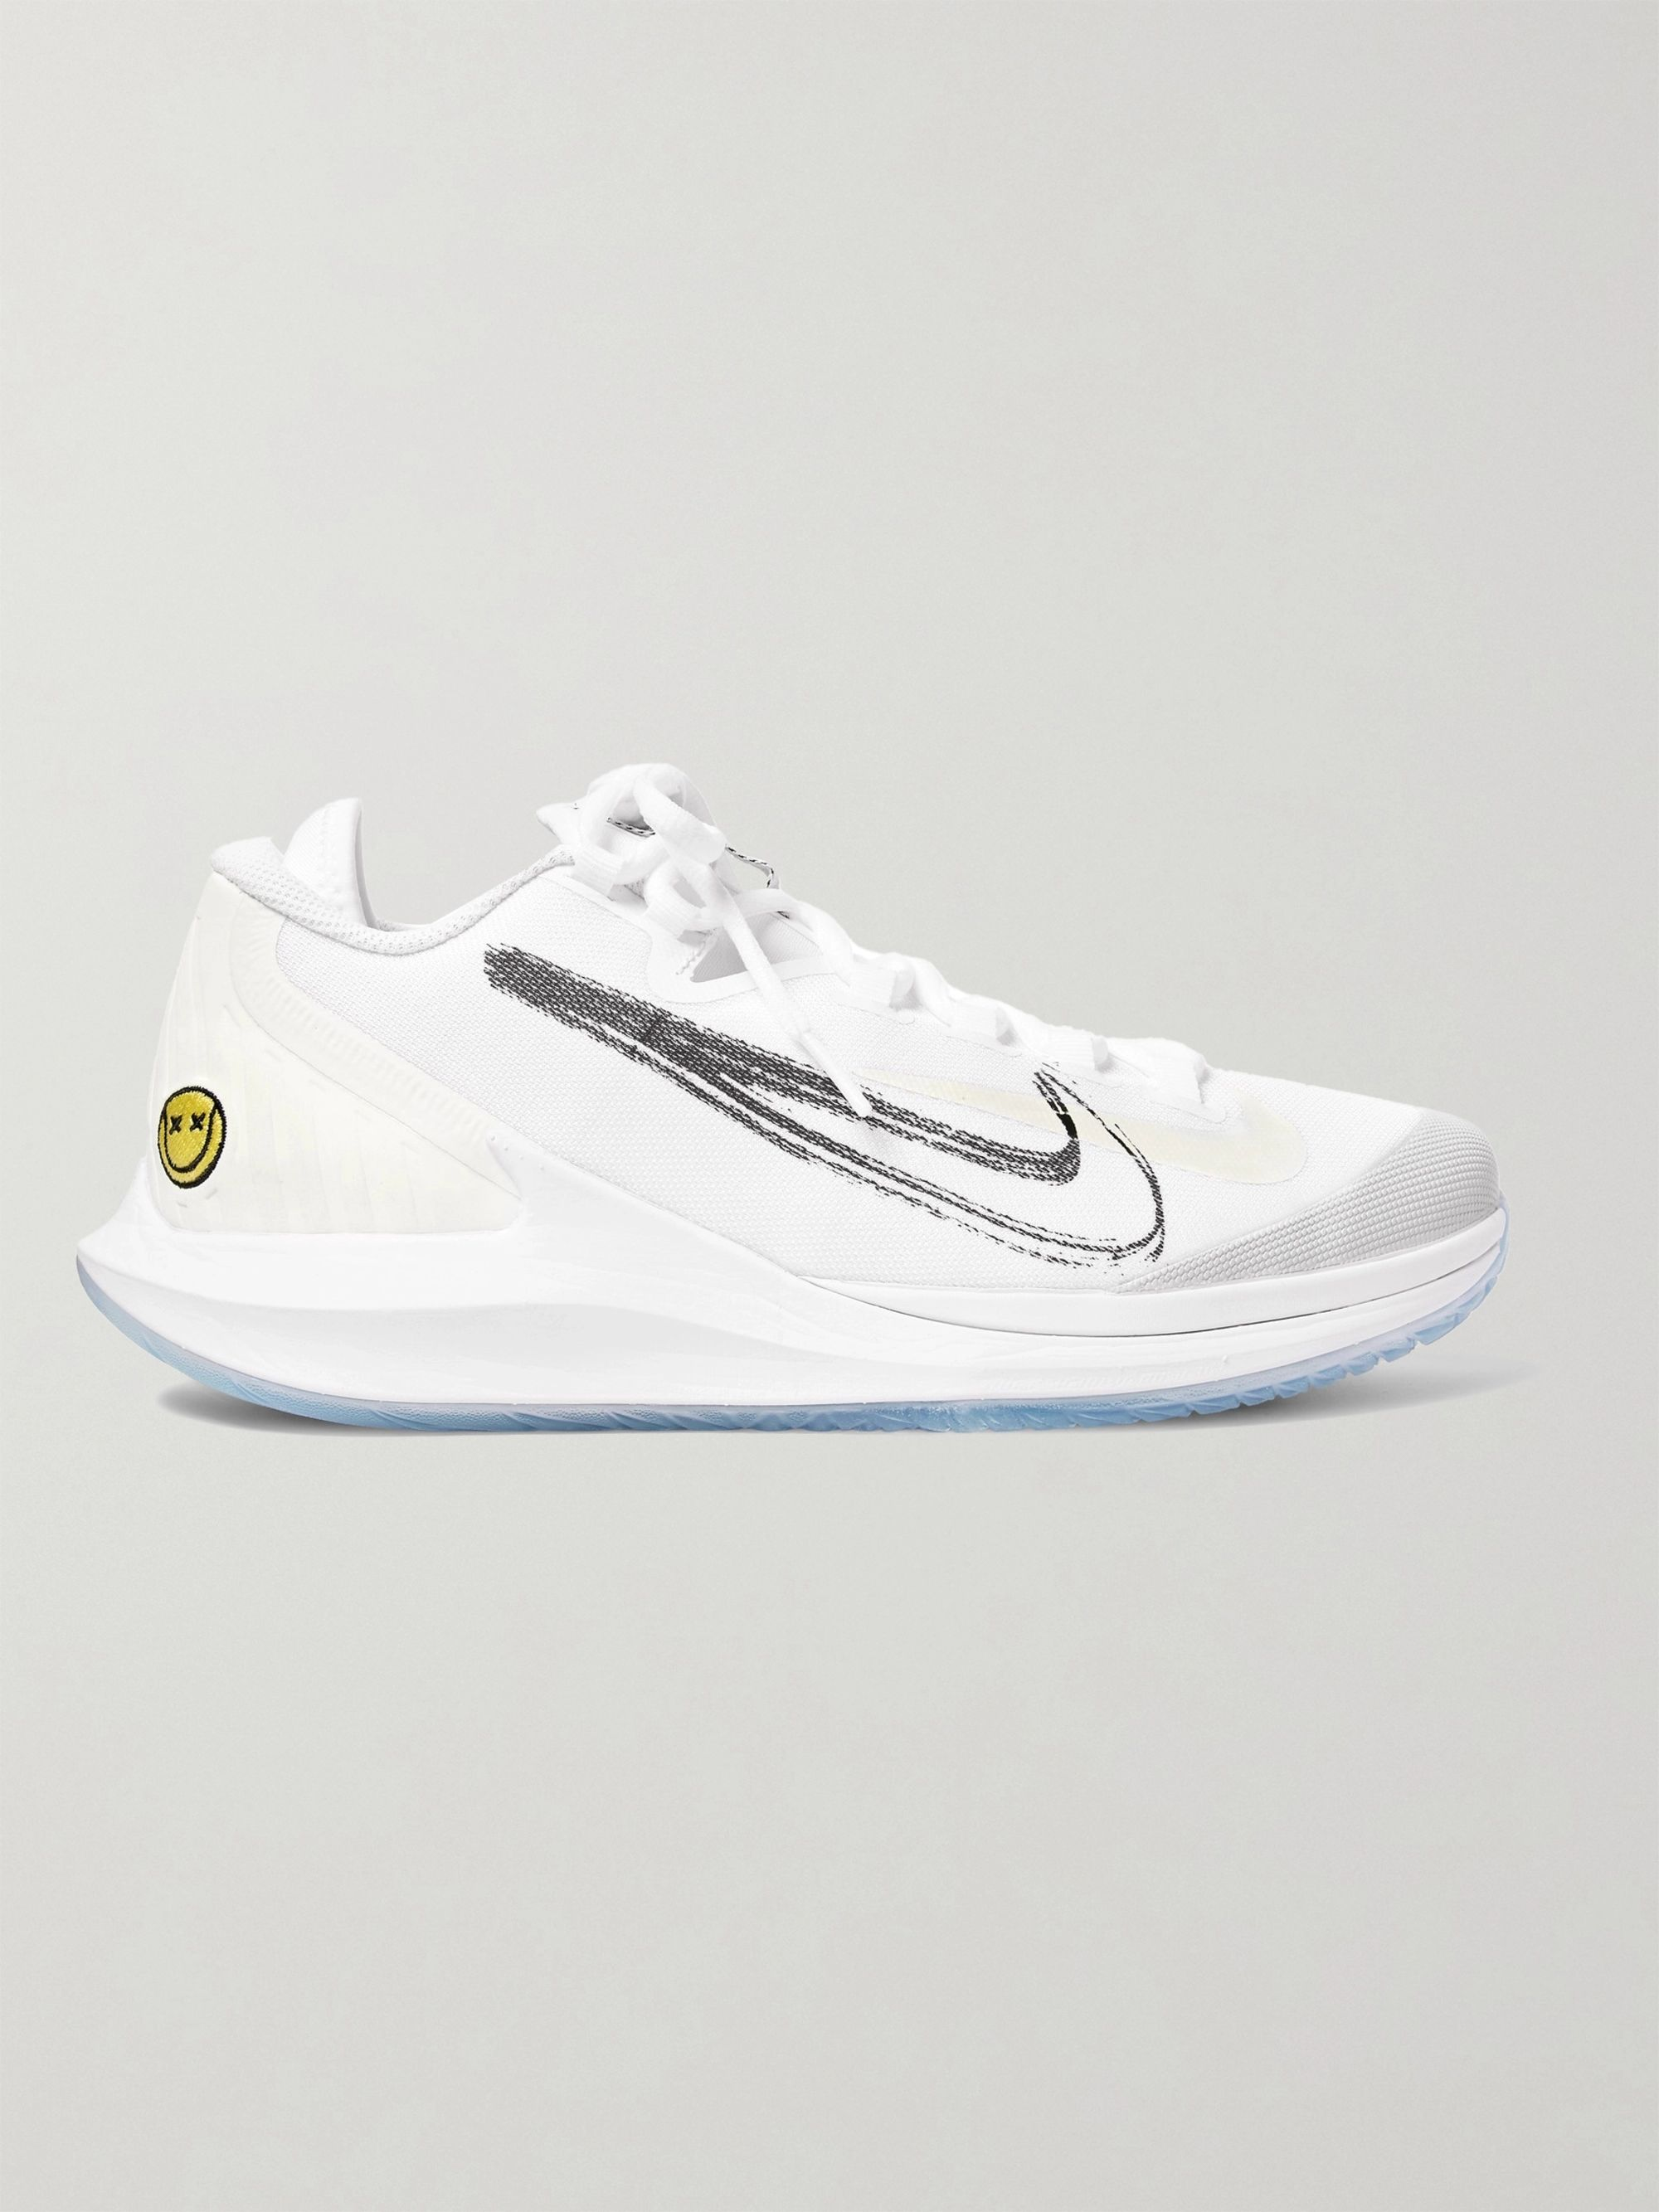 NikeCourt Air Zoom Zero HC Rubber Panelled Mesh Tennis Sneakers